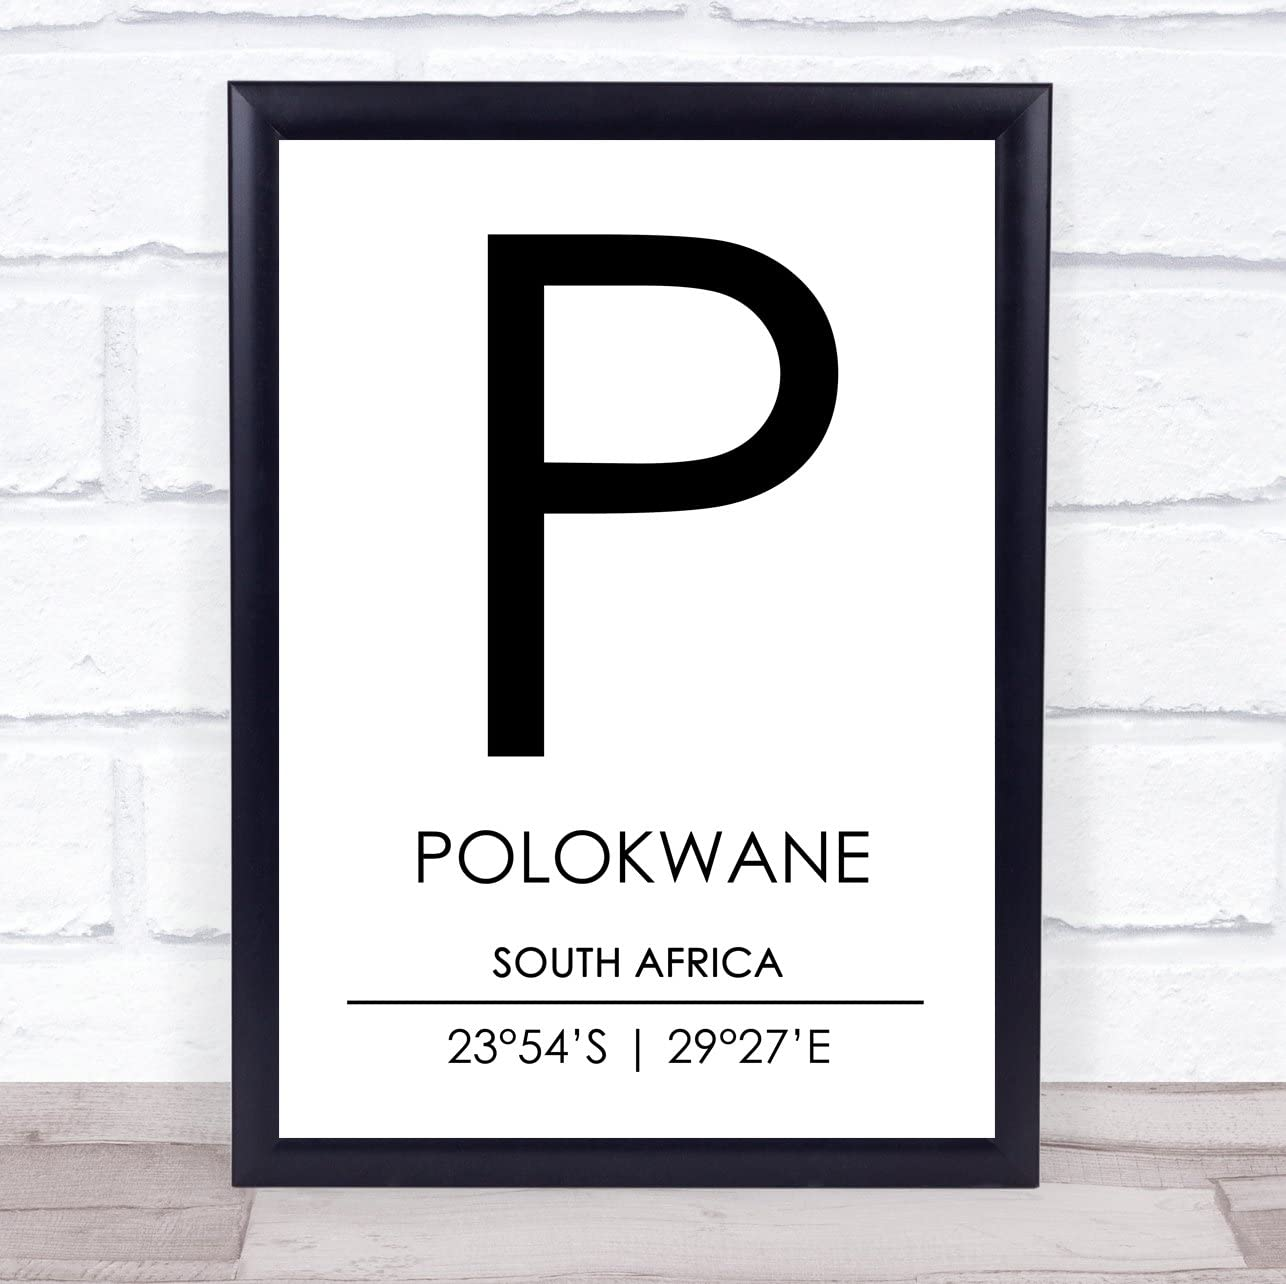 Amazon Com Polokwane South Africa Coordinates World City Travel Quote Wall Art Print Office Products